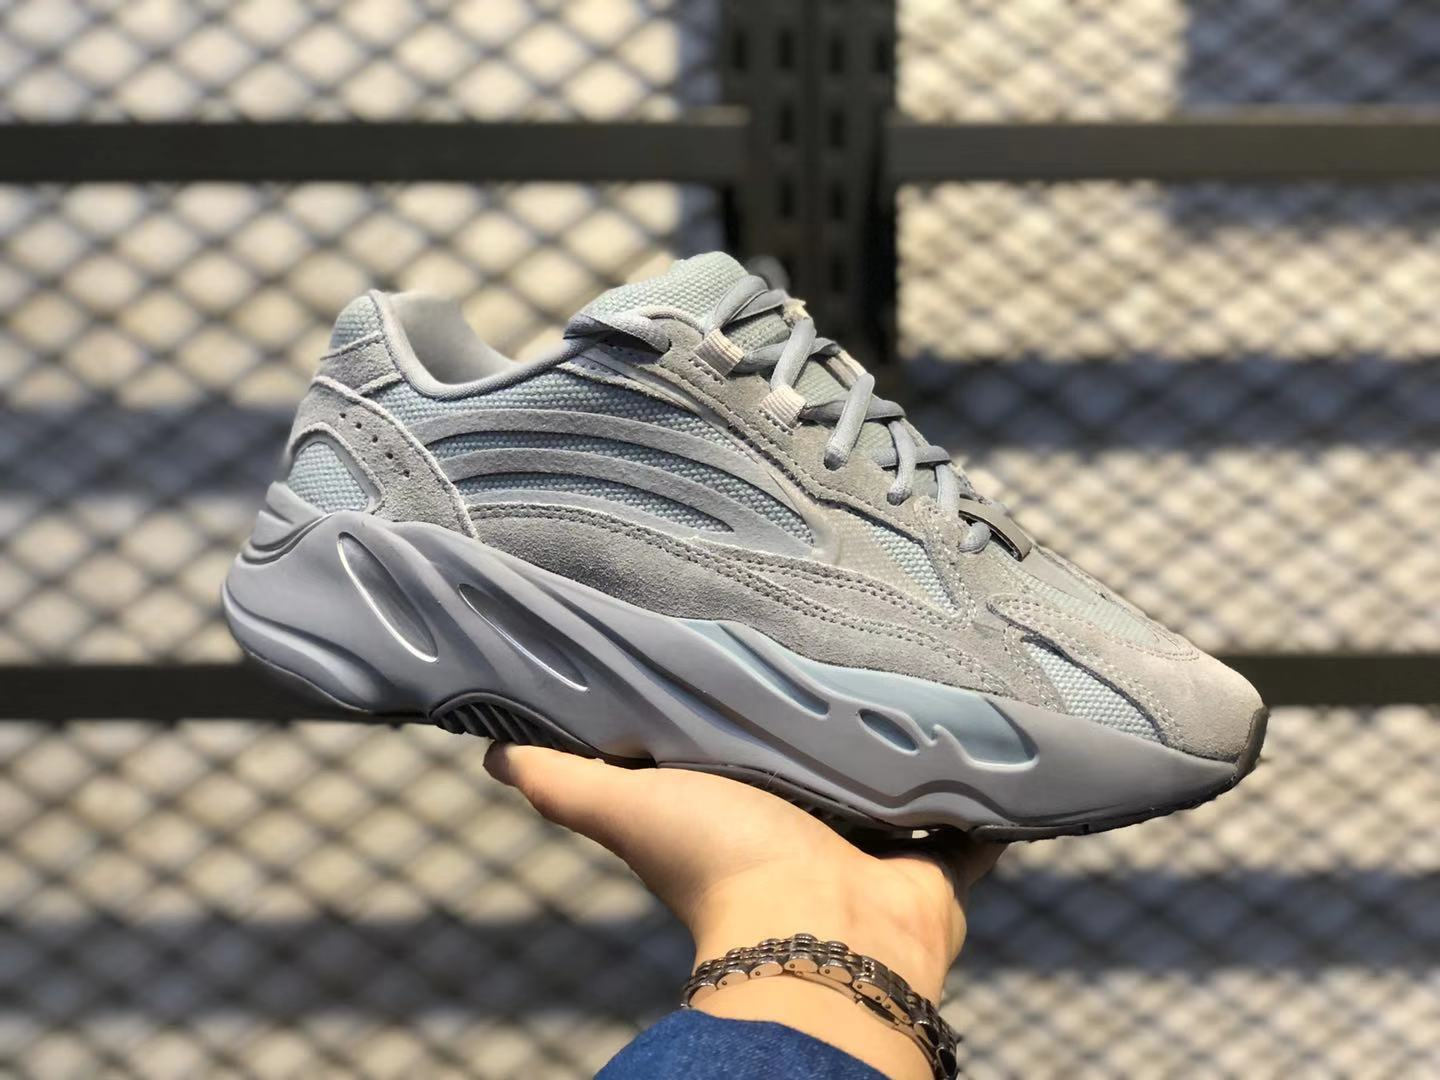 """2020 Adidas Yeezy Boost 700 V2 """"Hospital Blue"""" FV8424 Top Shoes To Buy"""